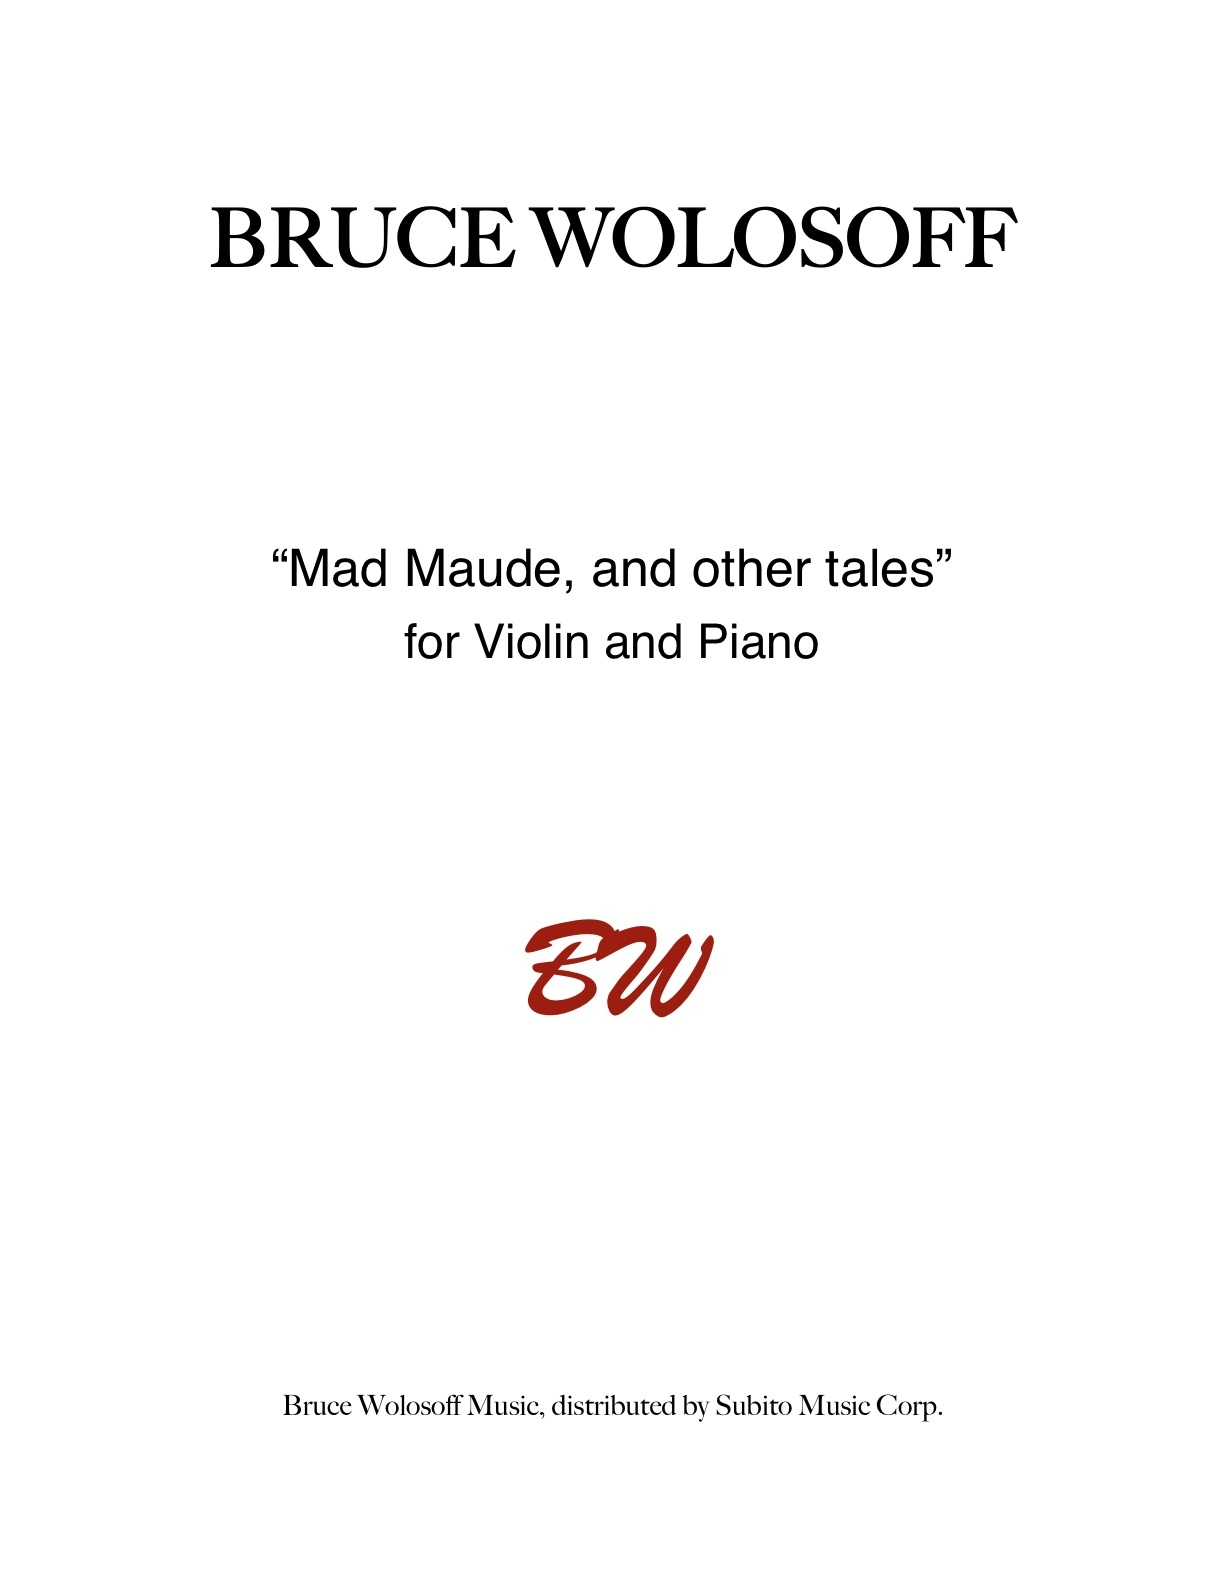 Mad Maude, and Other Tales for violin & piano